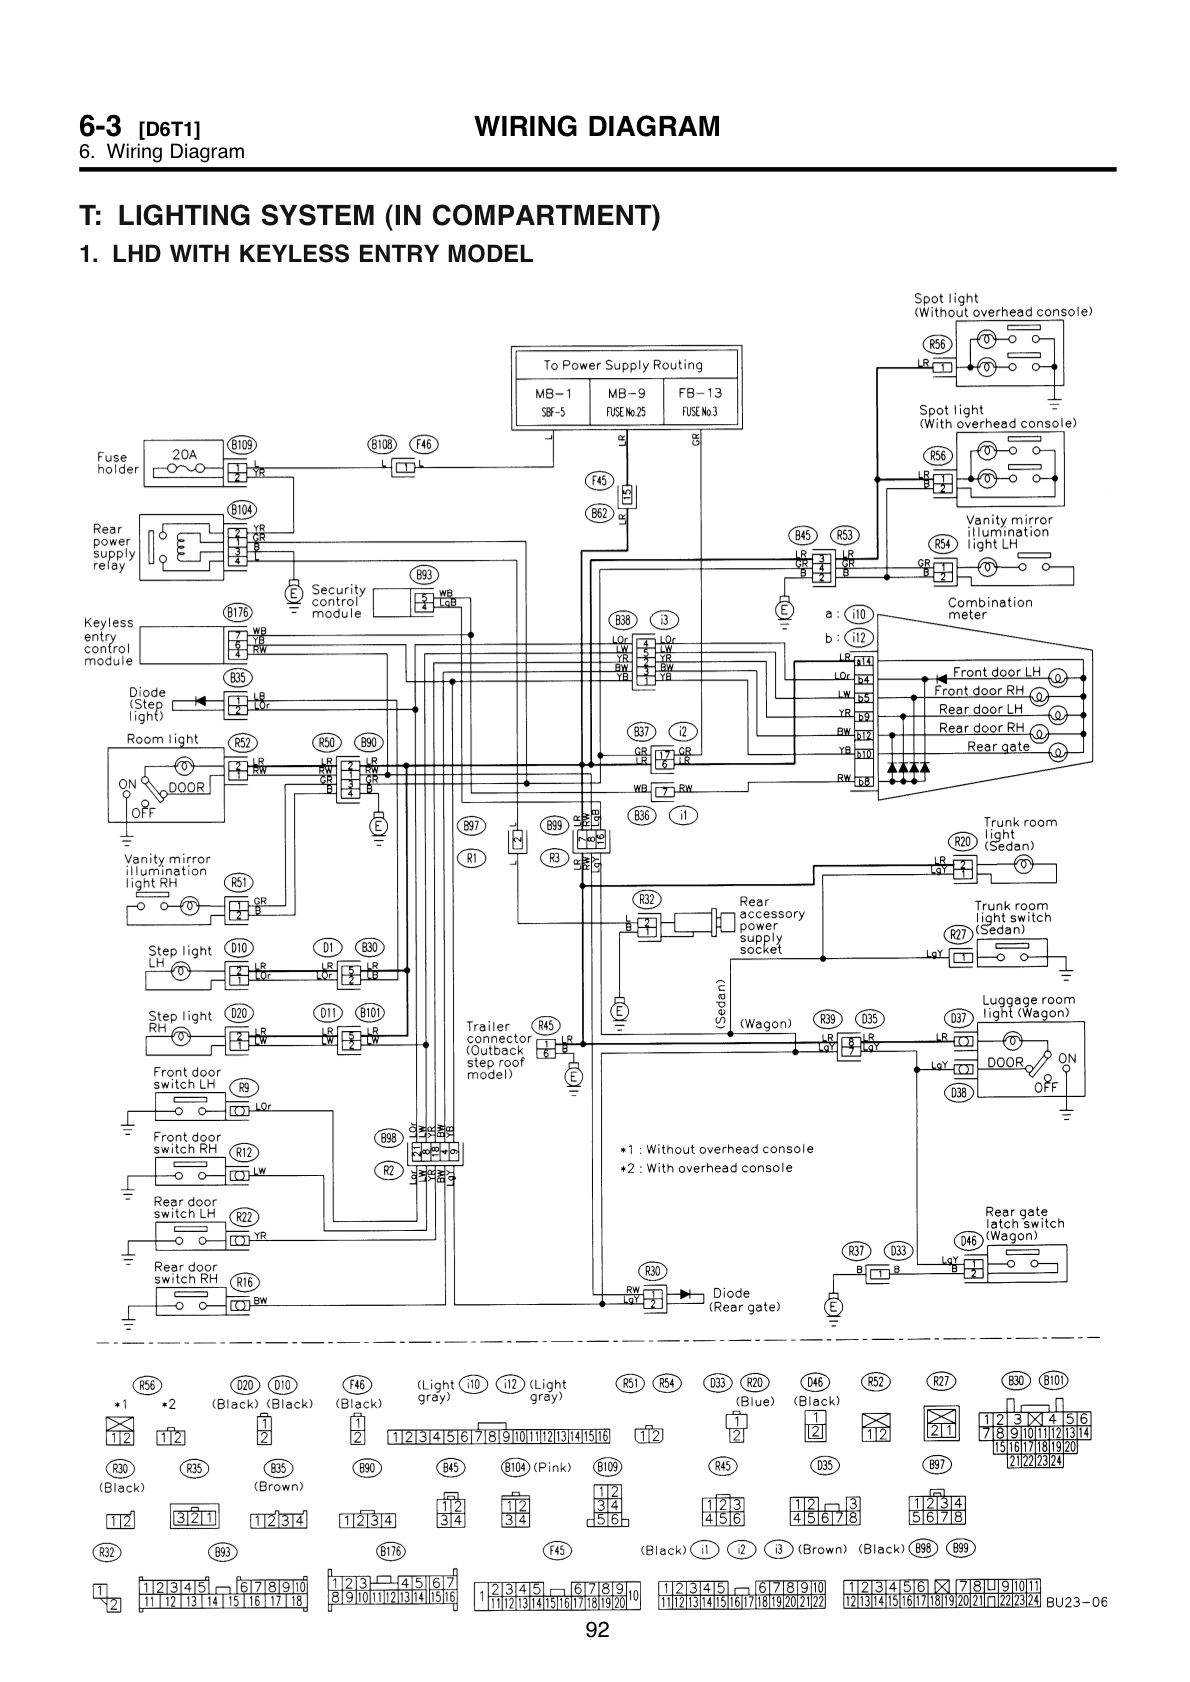 1997 subaru legacy wiring diagram Download-1997 Subaru Legacy Wiring Diagram Beautiful Wiring Schmatic 98 Perfect Subaru Stereo Wiring Diagram Ponent 9-k